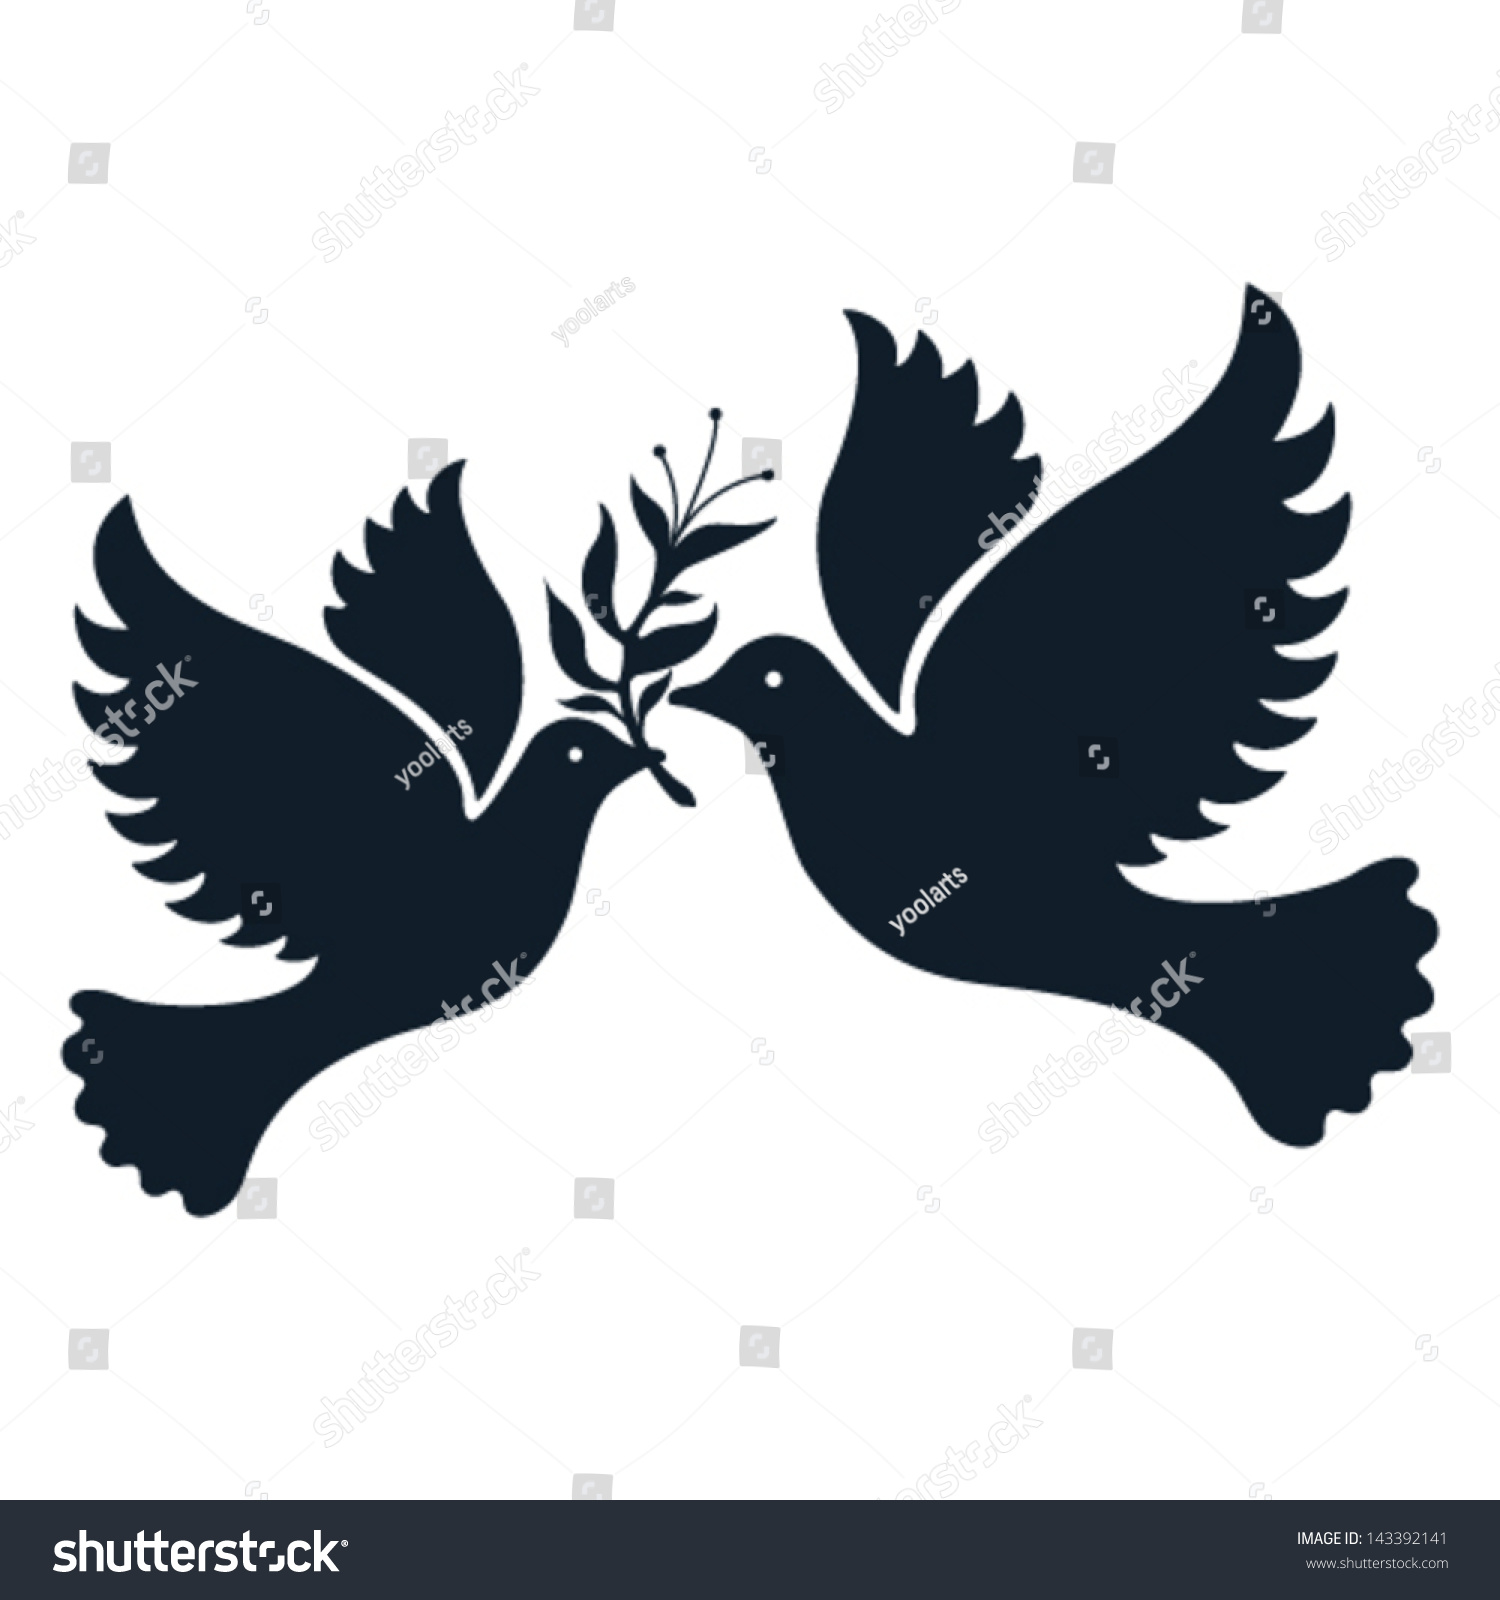 Free Flying Vector White Dove Symbol Stock Vector ...